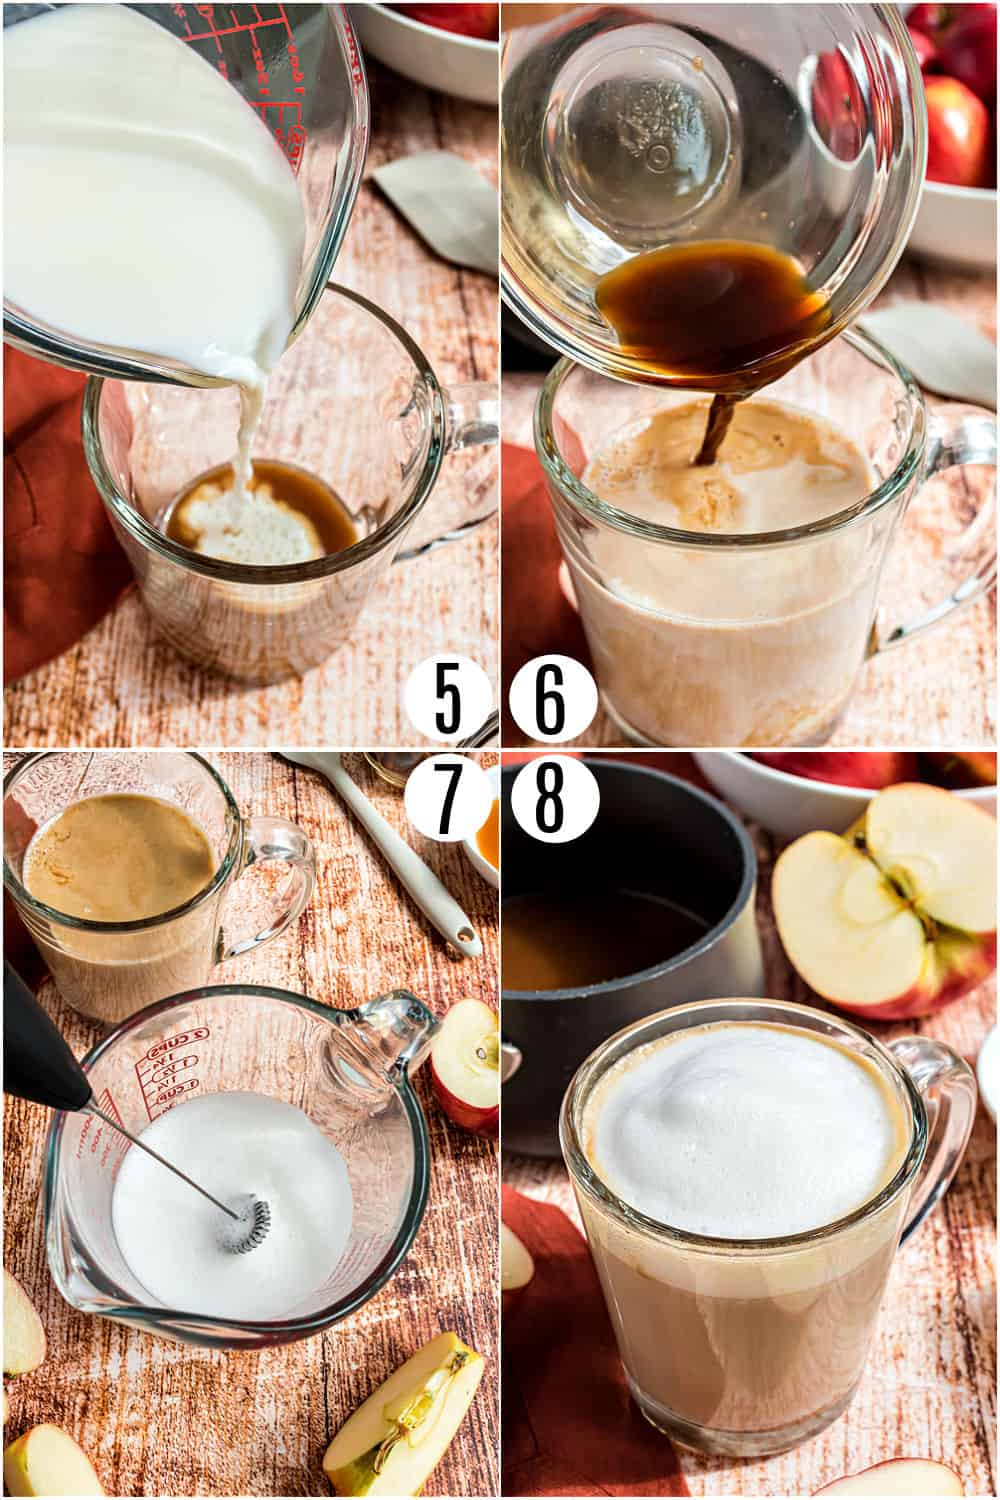 Step by step photos showing how to assemble an apple crisp macchiato drink.